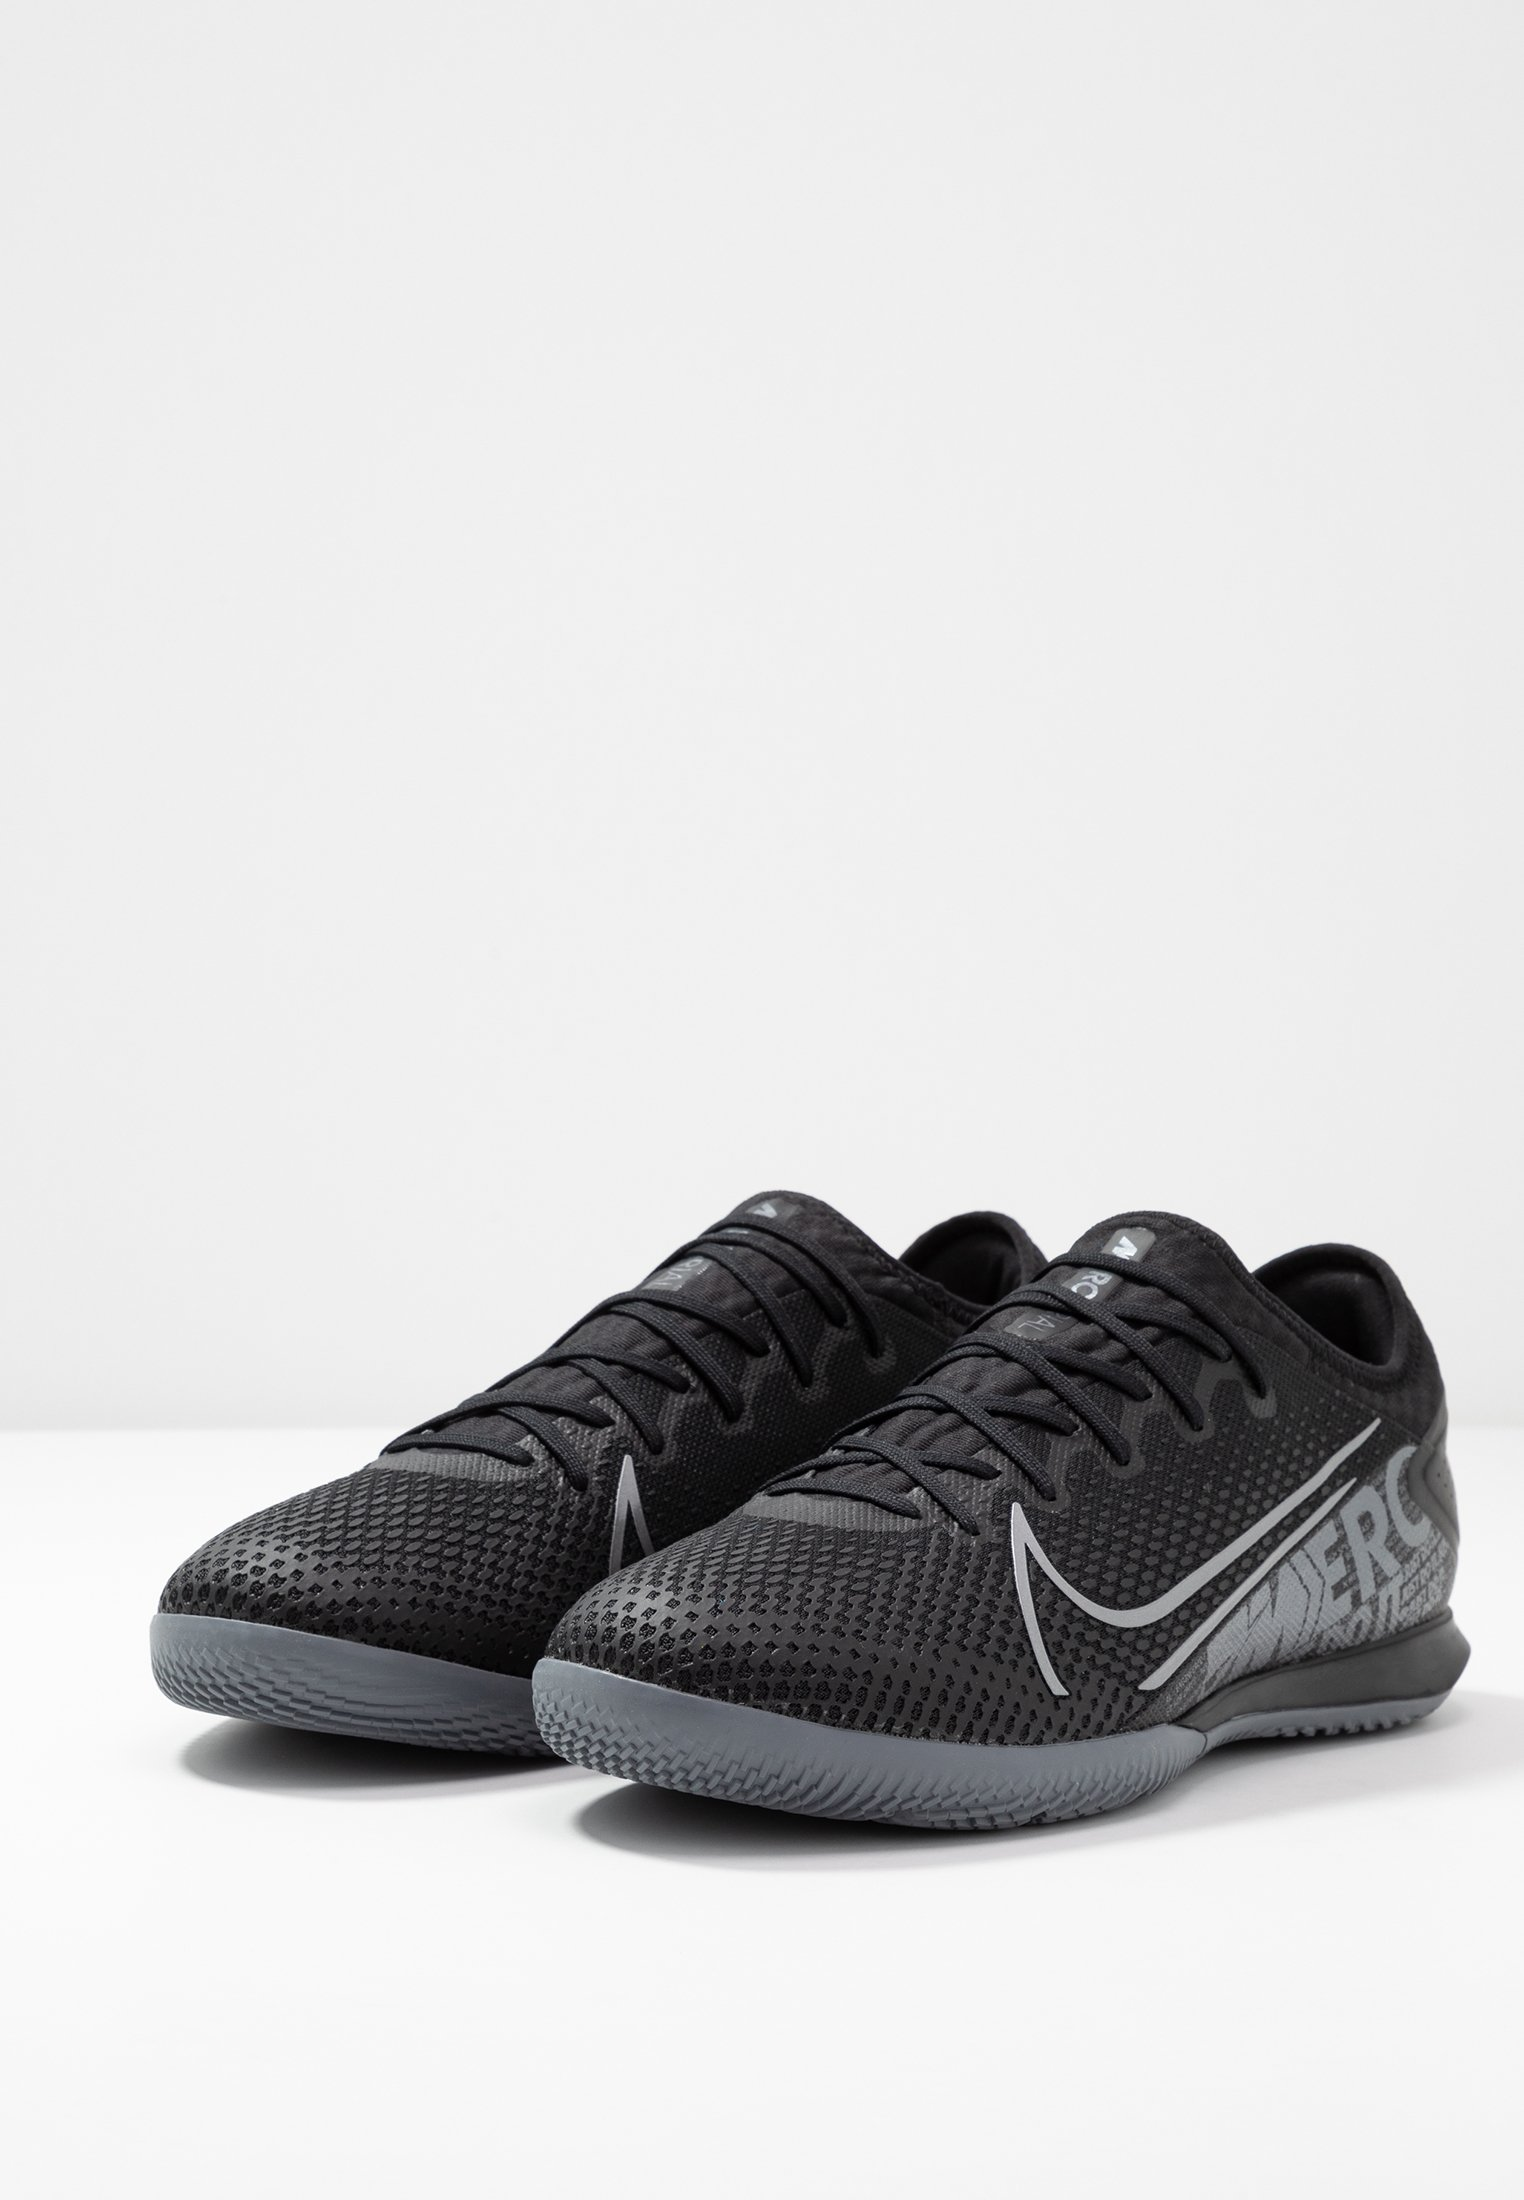 Performance 13 dark Foot En Black De Grey Vapor Pro Salle Nike IcChaussures 2WE9YDHI